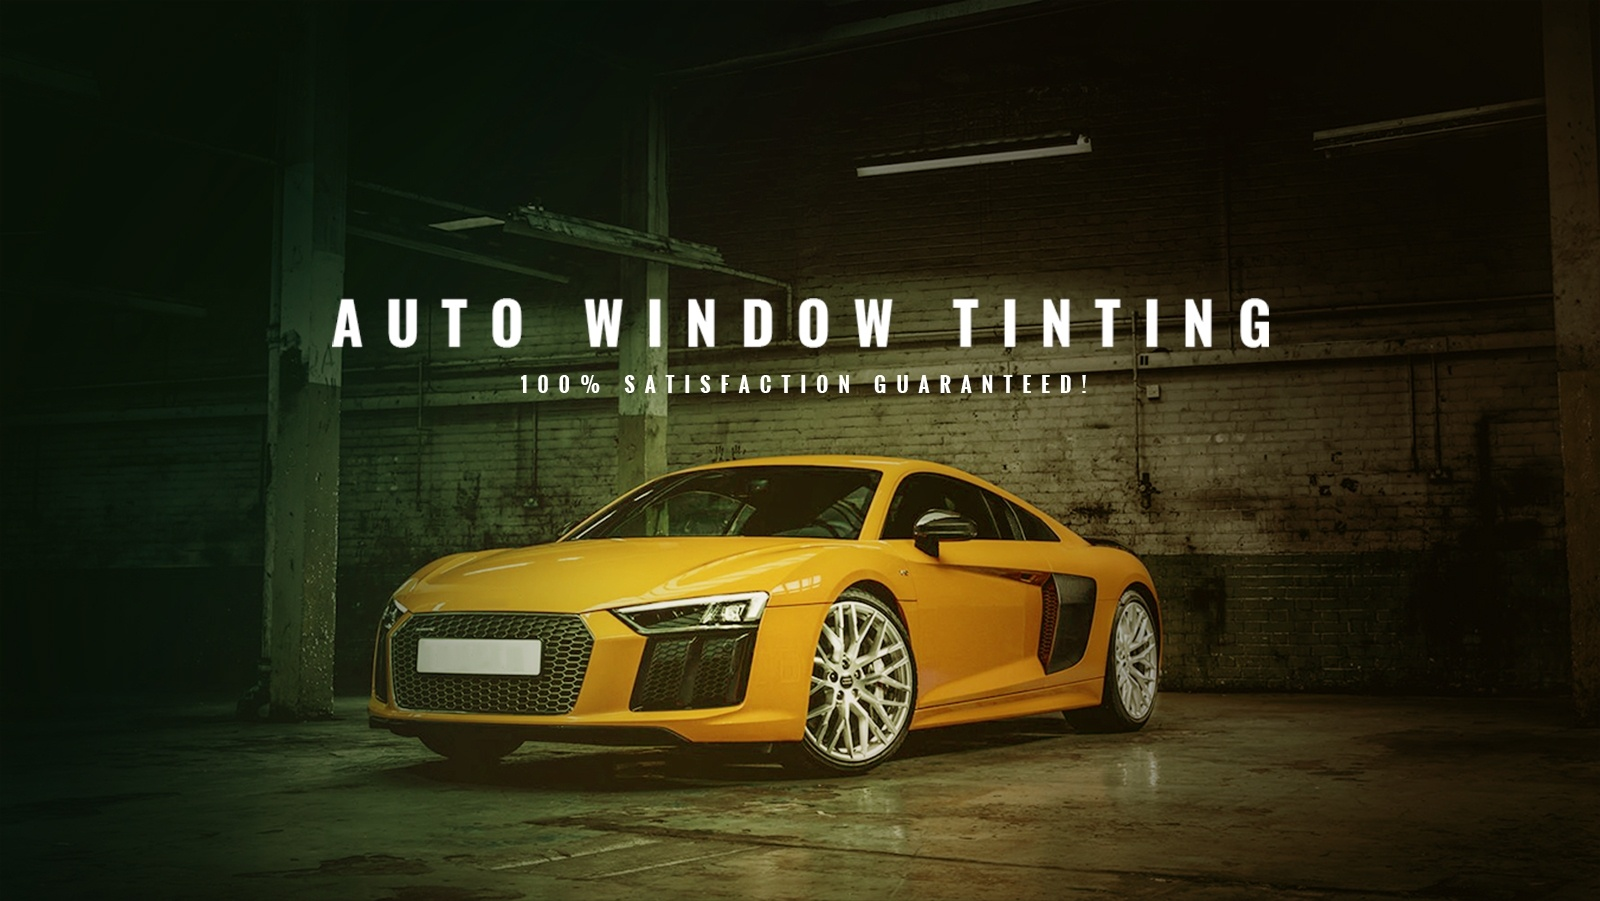 window tinting Los Angeles